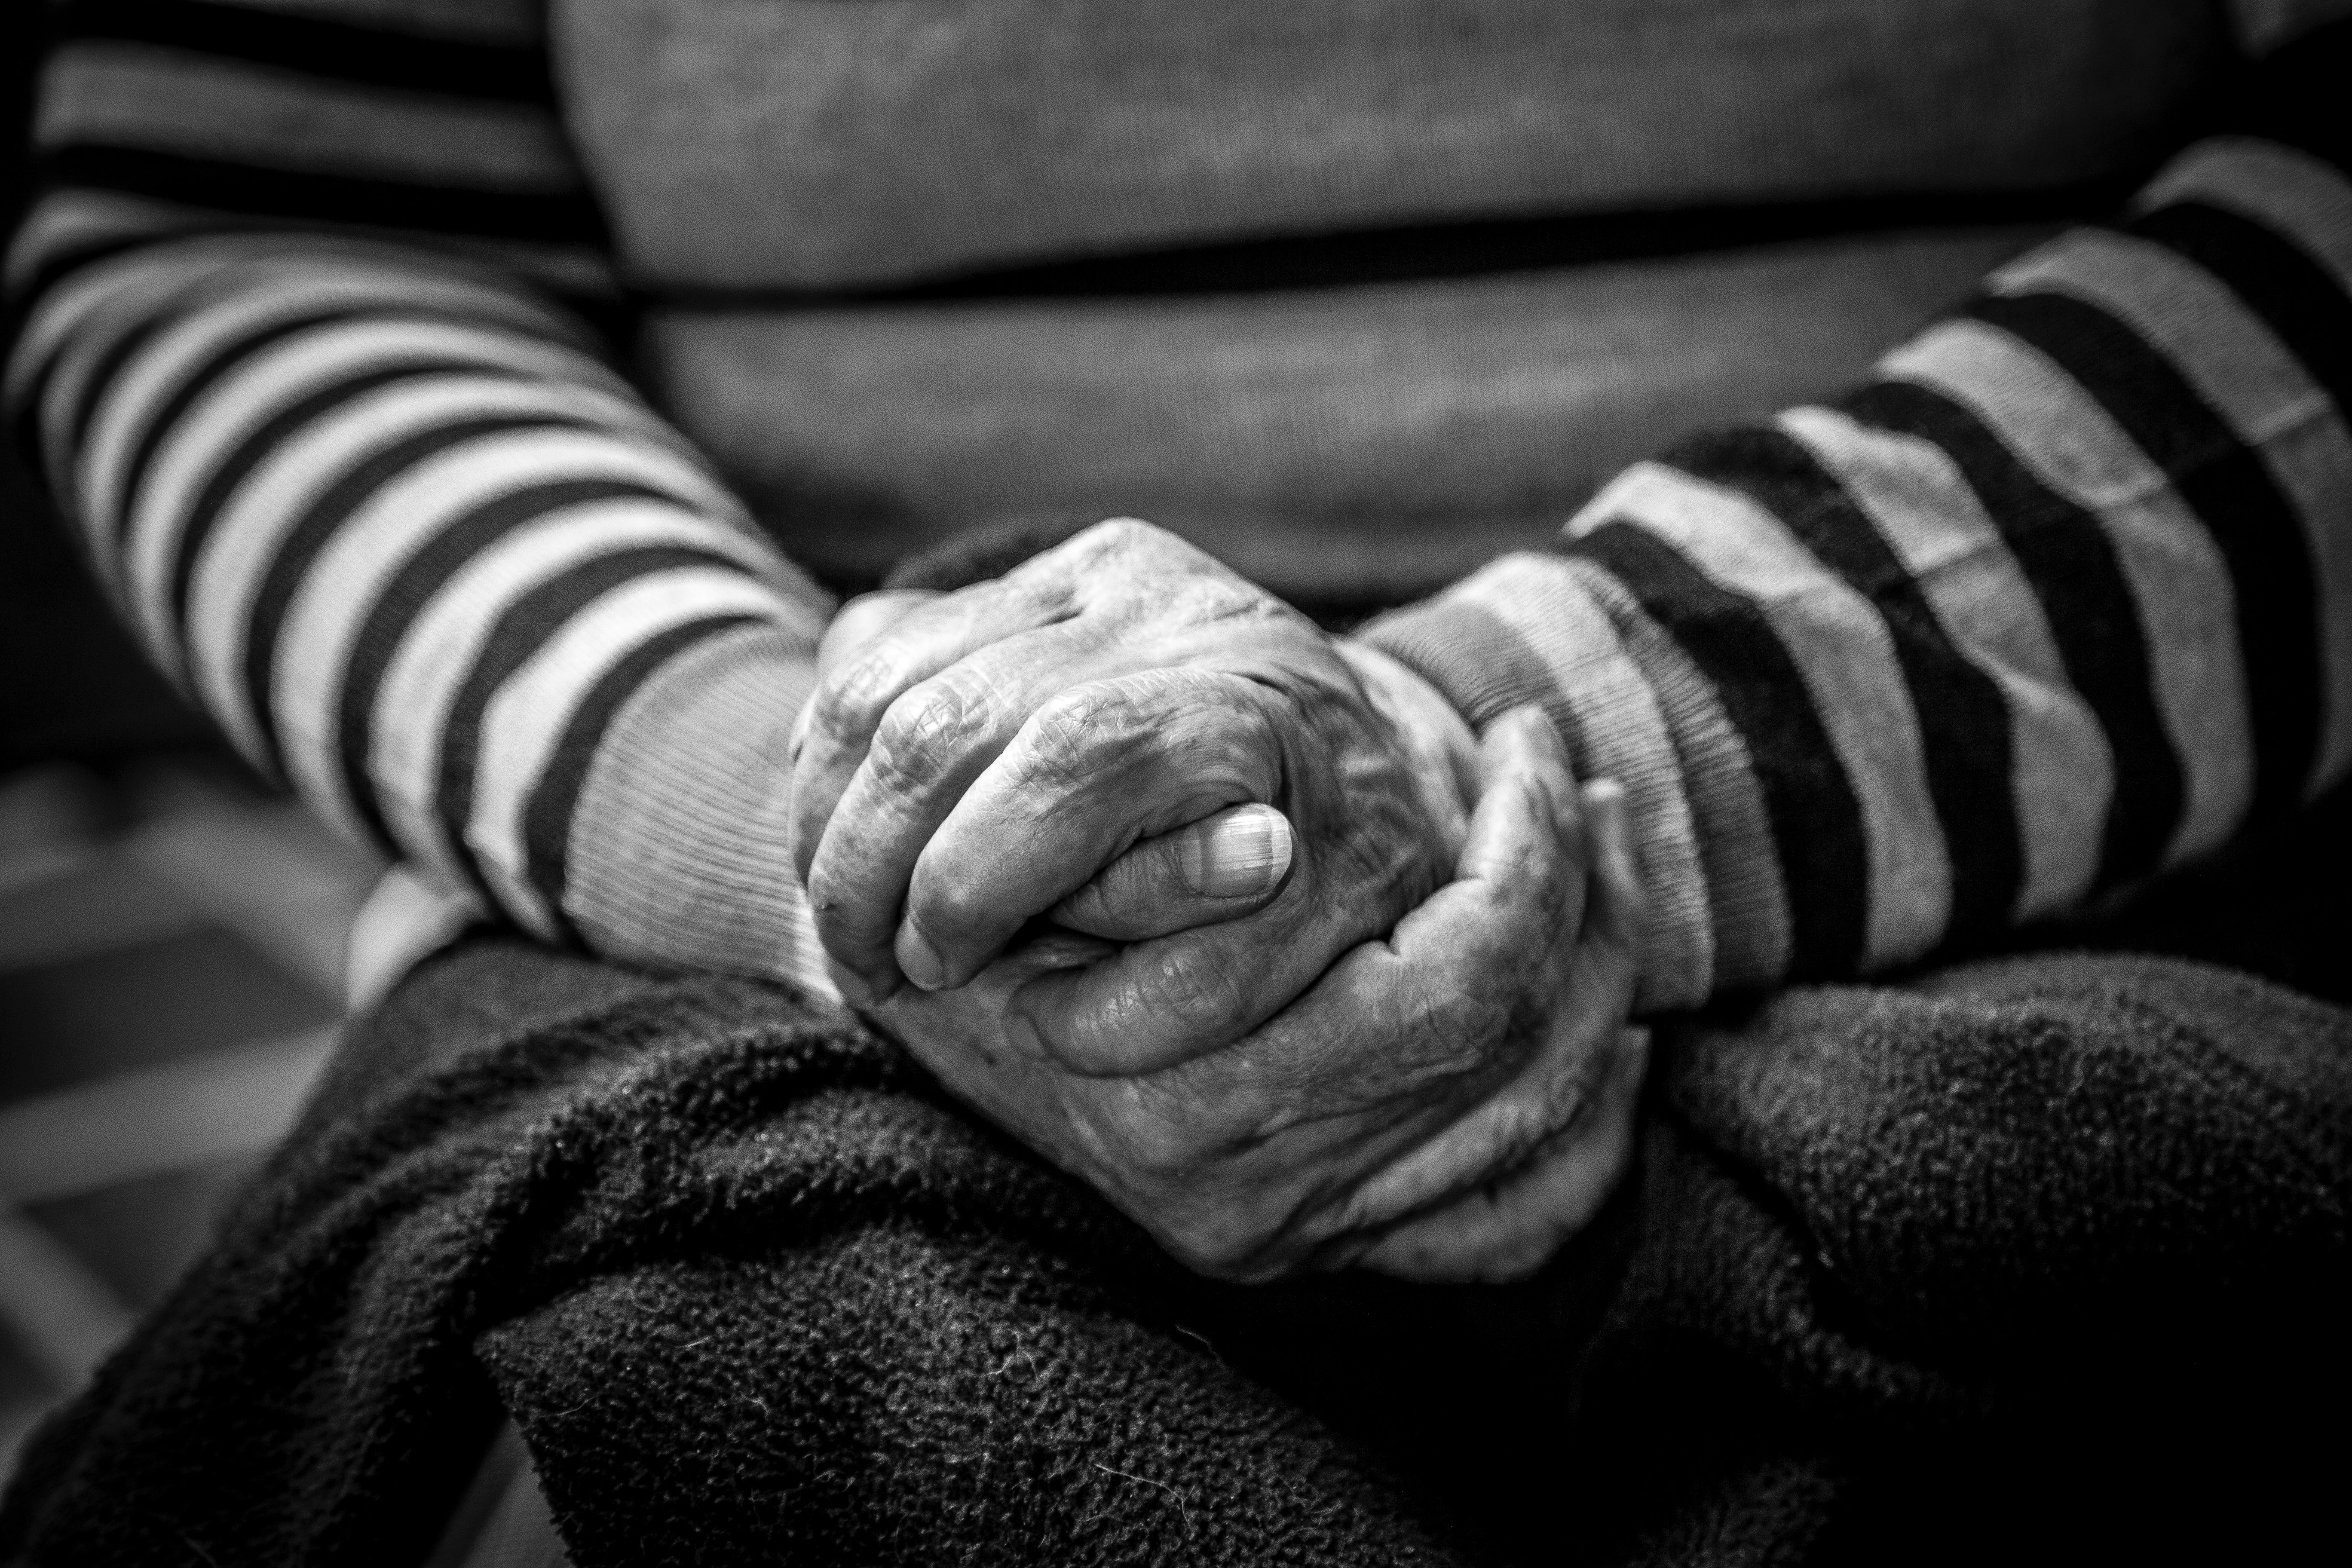 An old south American woman wearing a striped shirt folding her wrinkled hands together in Bogotá.